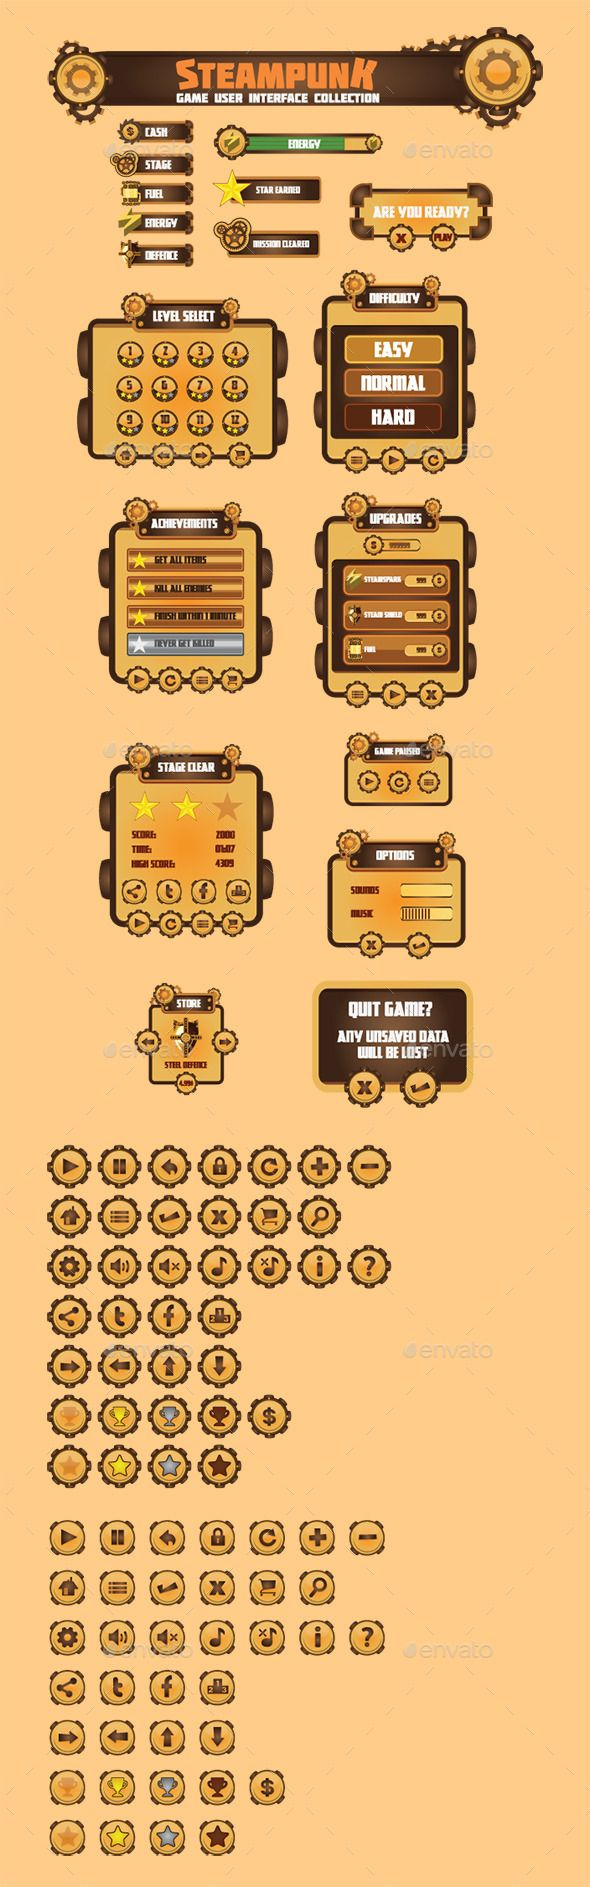 Steam Punk Game User Interface Set (Vector EPS, AI Illustrator, CS, 2d, alloy, black, bronze, brown, cog, copper, dark, game asset, game vectors, gear, gold, grey, gui, industry, iron, mechanical, mechanism, metal, power, punk, rust, silver, specific, steam, steaming, steampunk, theme, user interface, wheel)